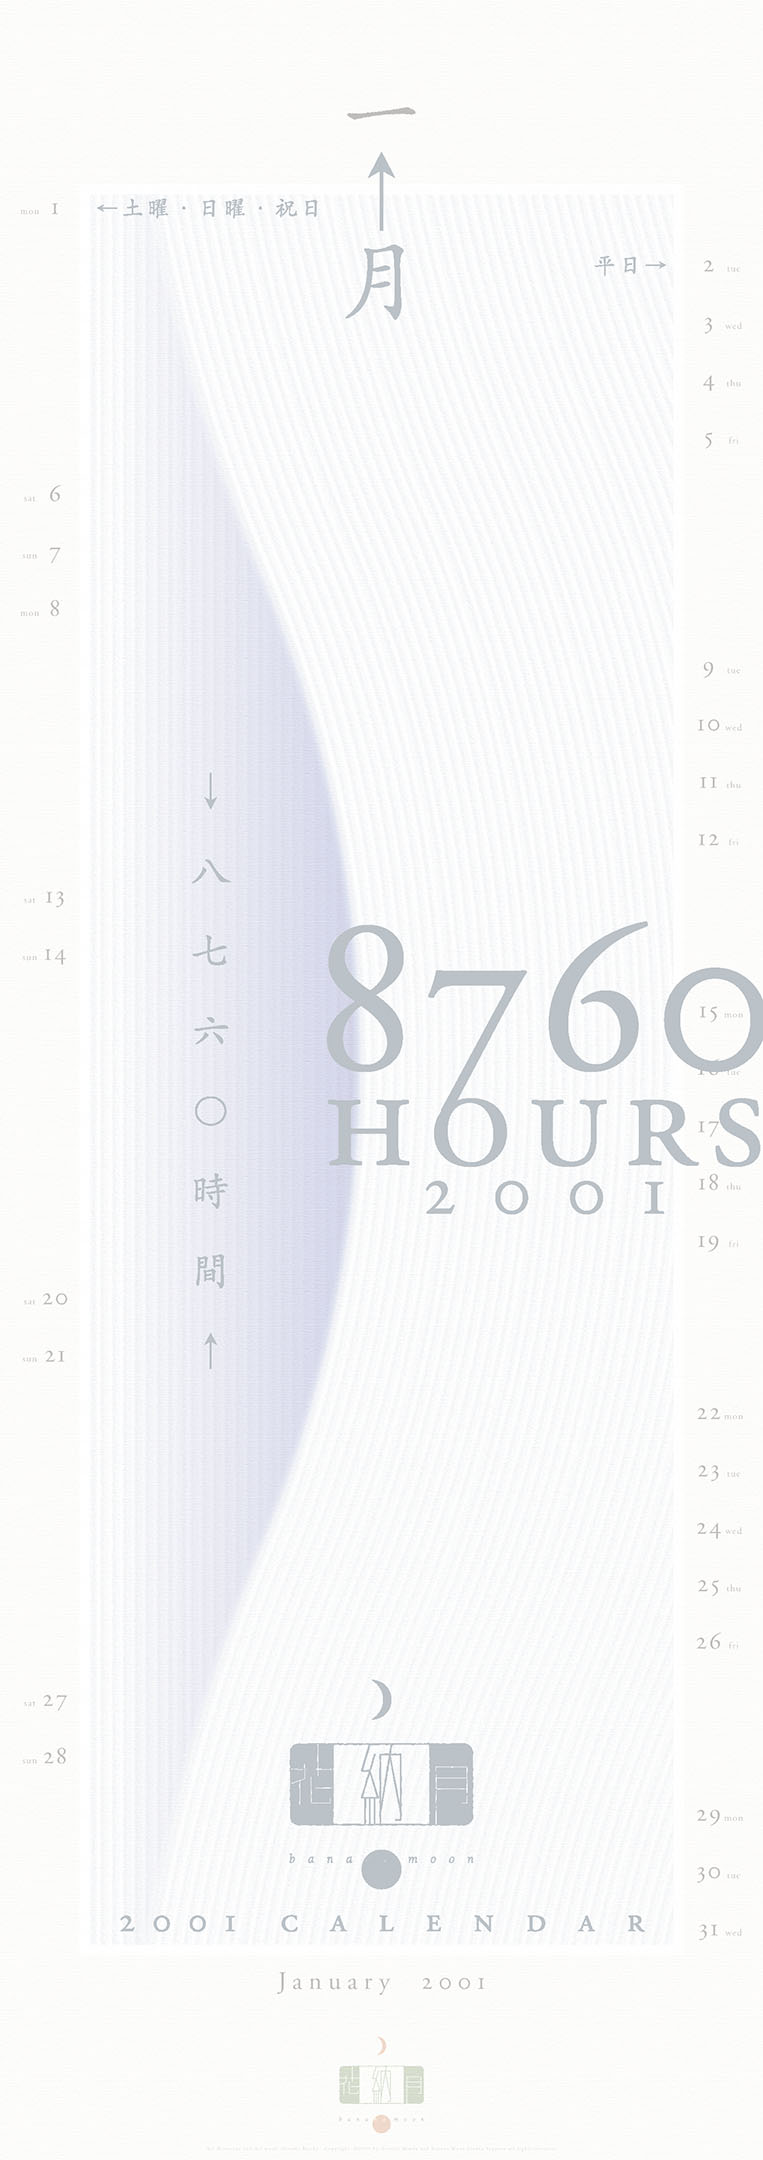 8760 HOURS